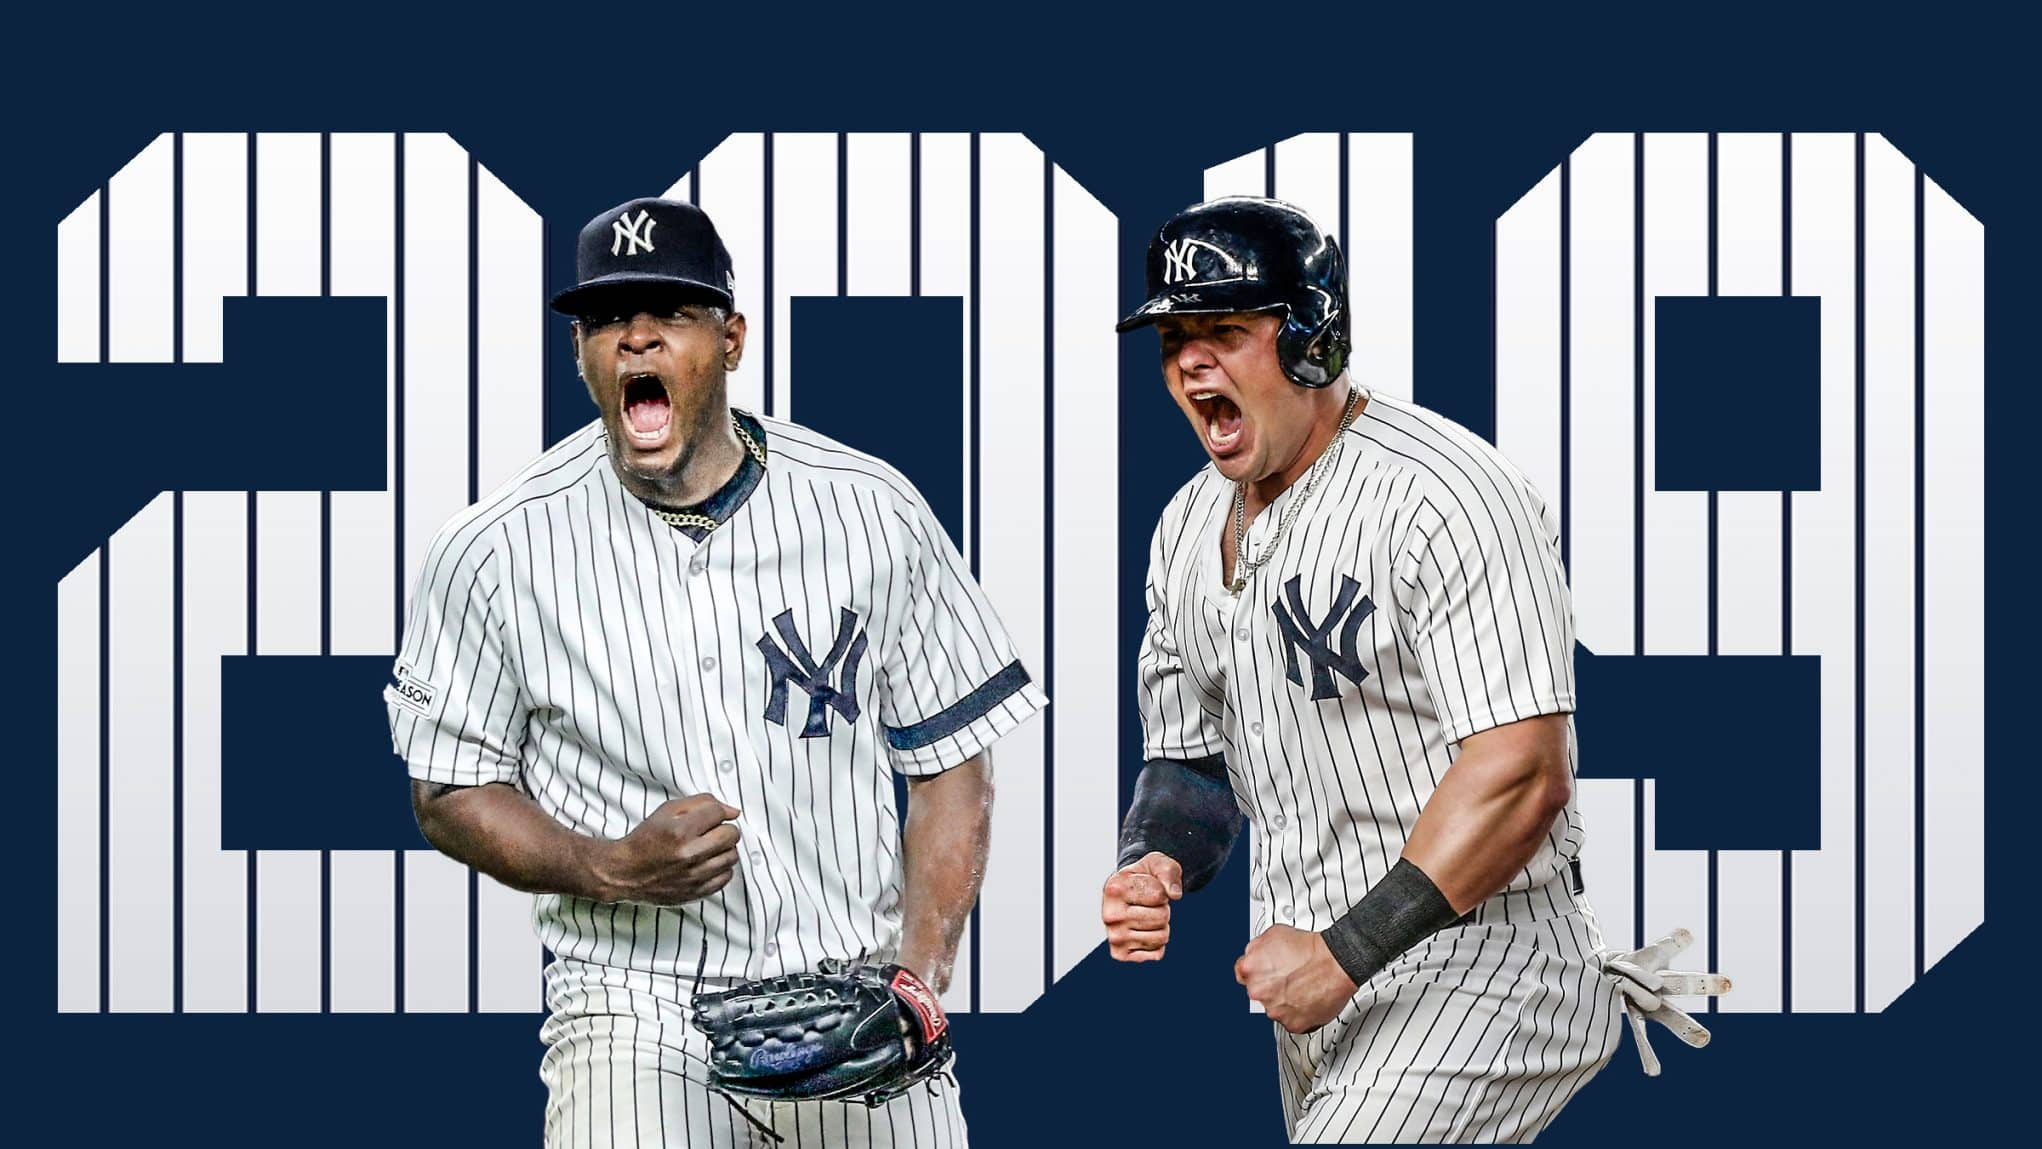 e633f104186 New York Yankees  undisputed recipe for a perfect 2019 season